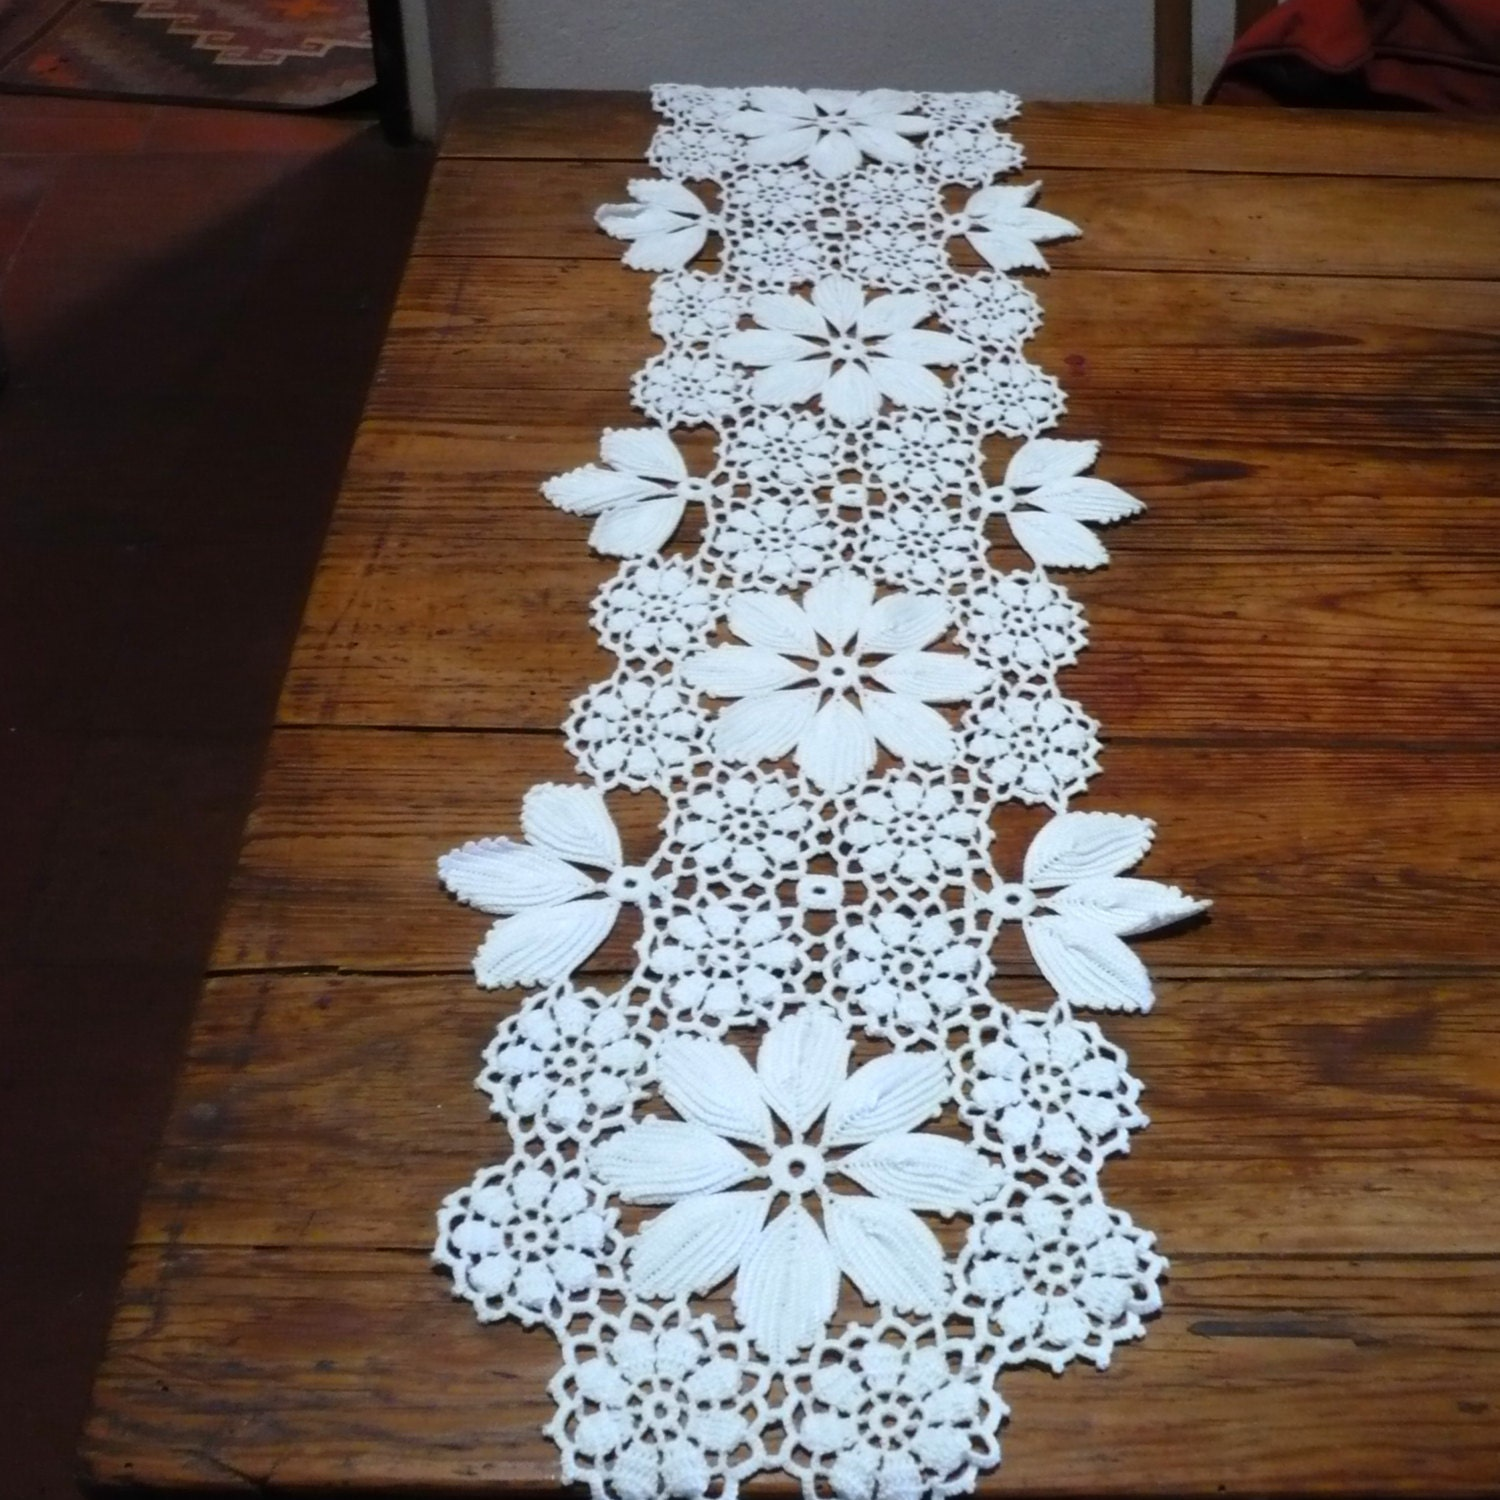 Crochet Patterns Table Runner : Crochet Table Runner Vintage Portuguese Crochet Table by CostaSul